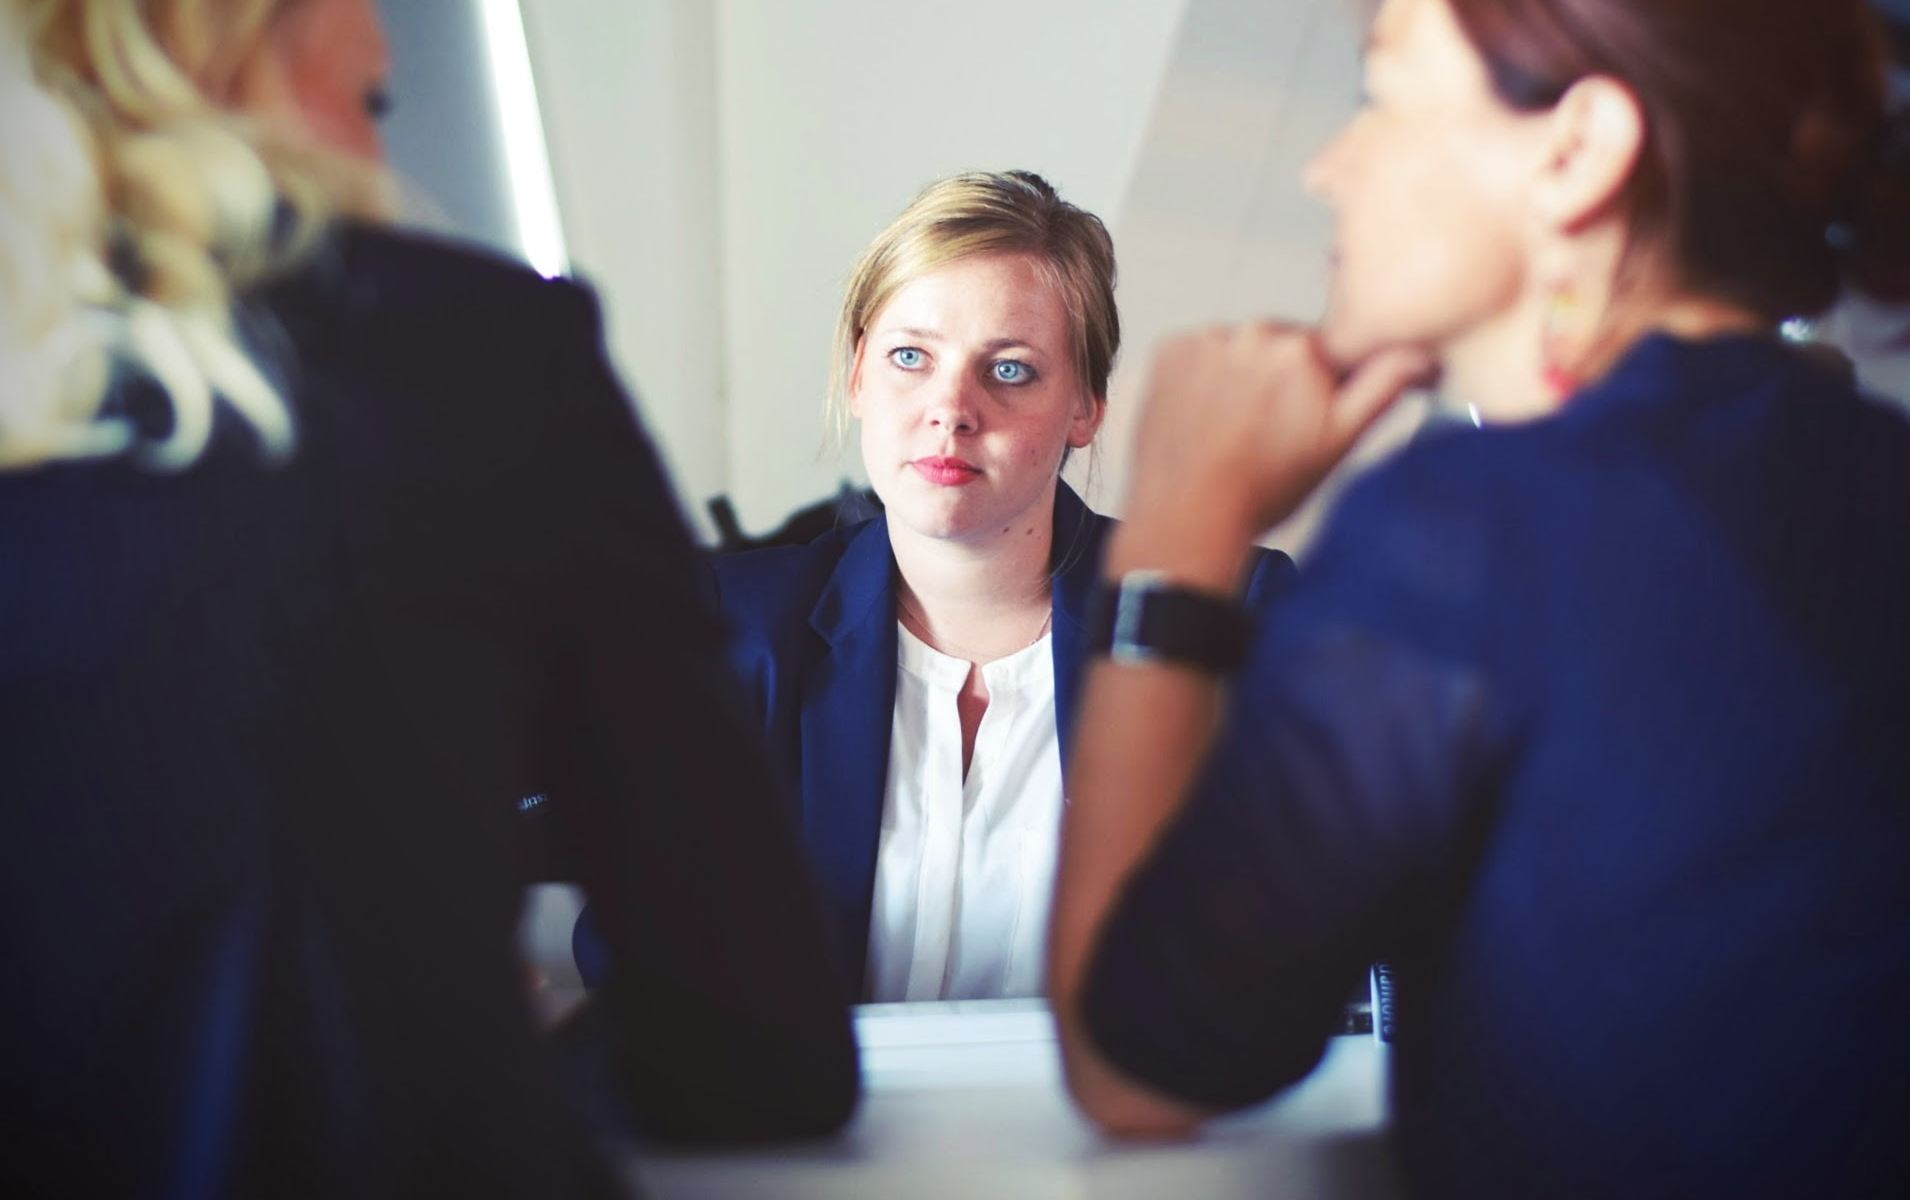 Three woman working together at table demonstrating flexibility and emotional intelligence